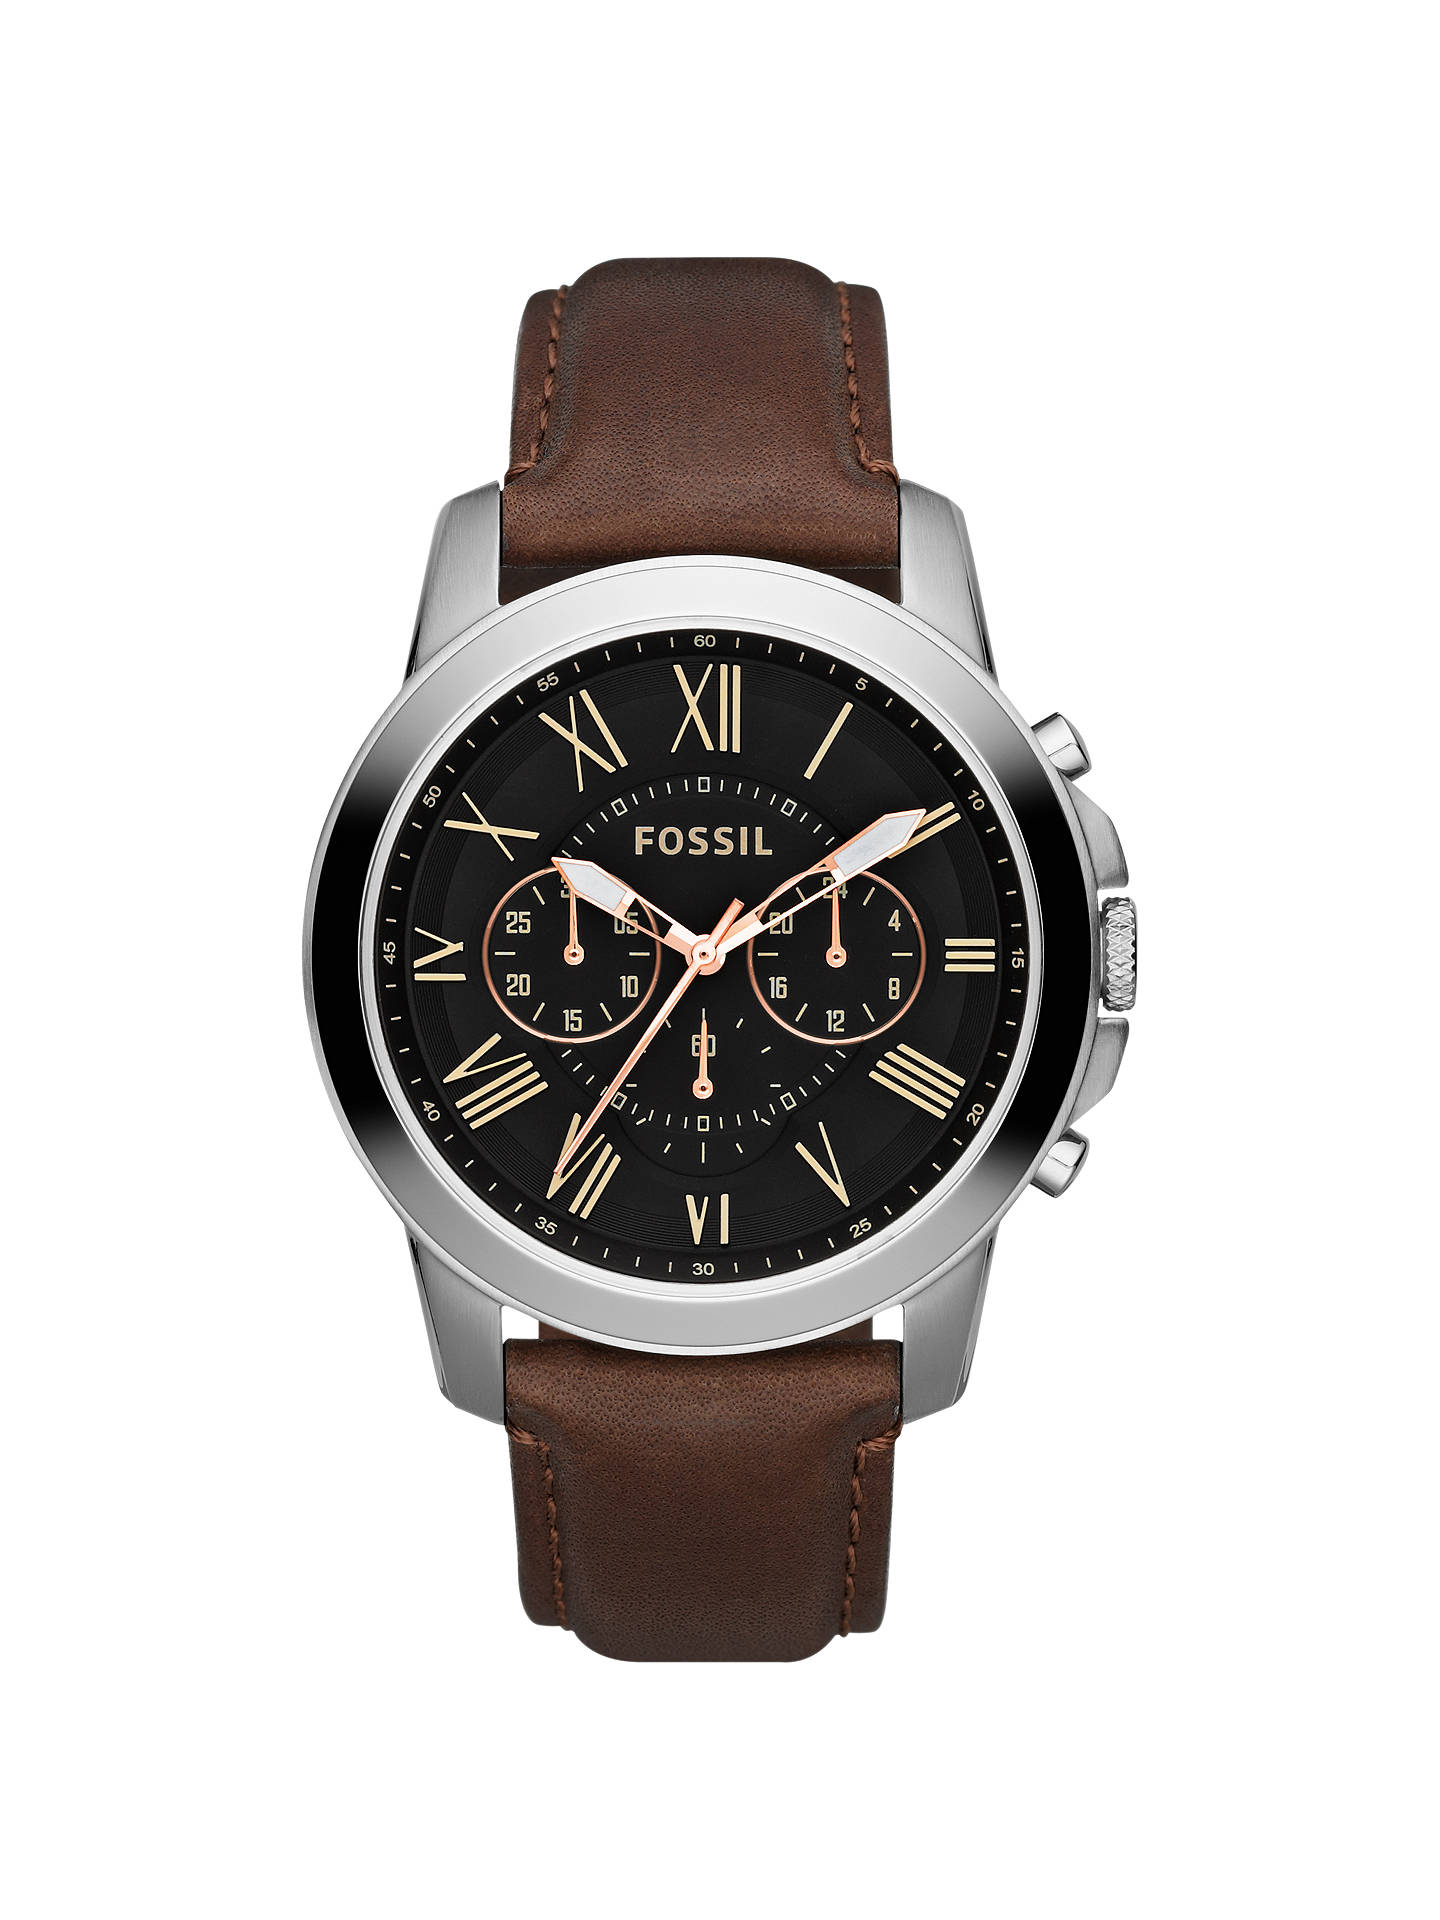 522931b553b3c Fossil Men s Grant Chronograph Leather Strap Watch at John Lewis ...